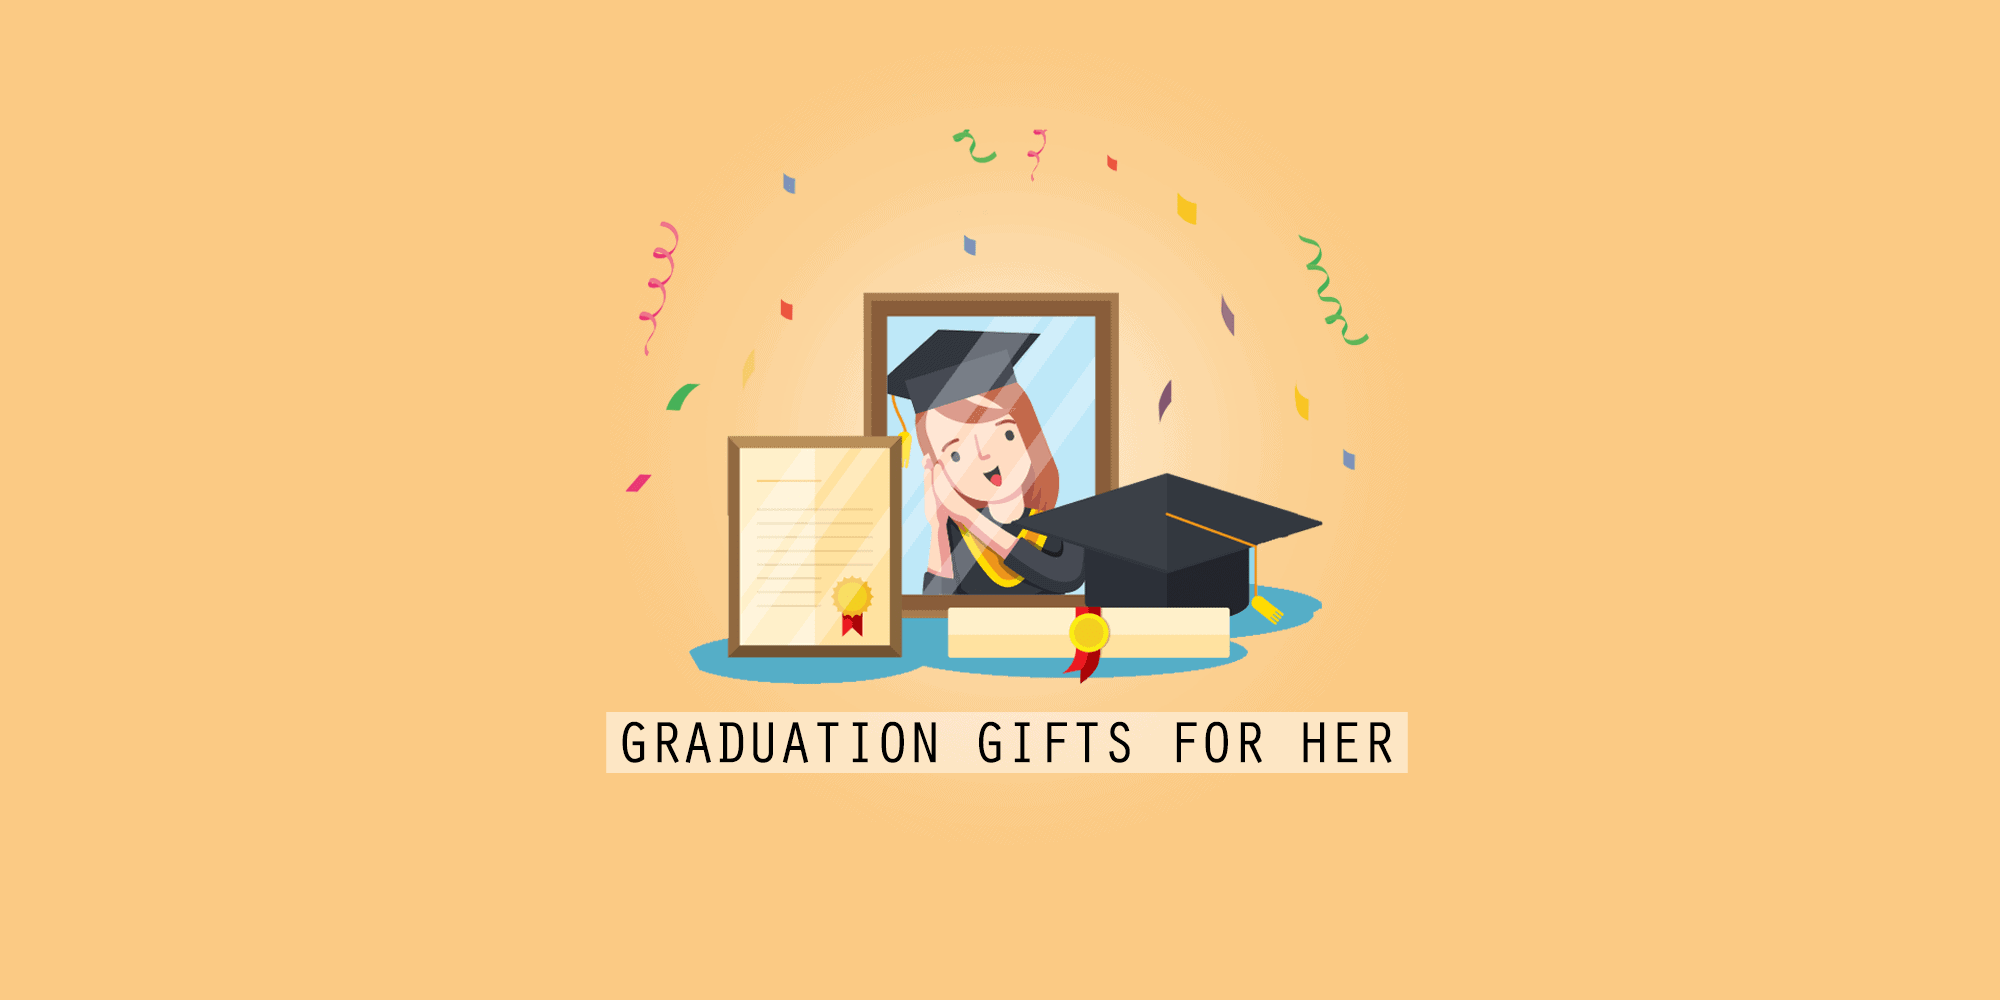 31 Best Graduation Gifts for Her: Top Grad Present Ideas (2021)